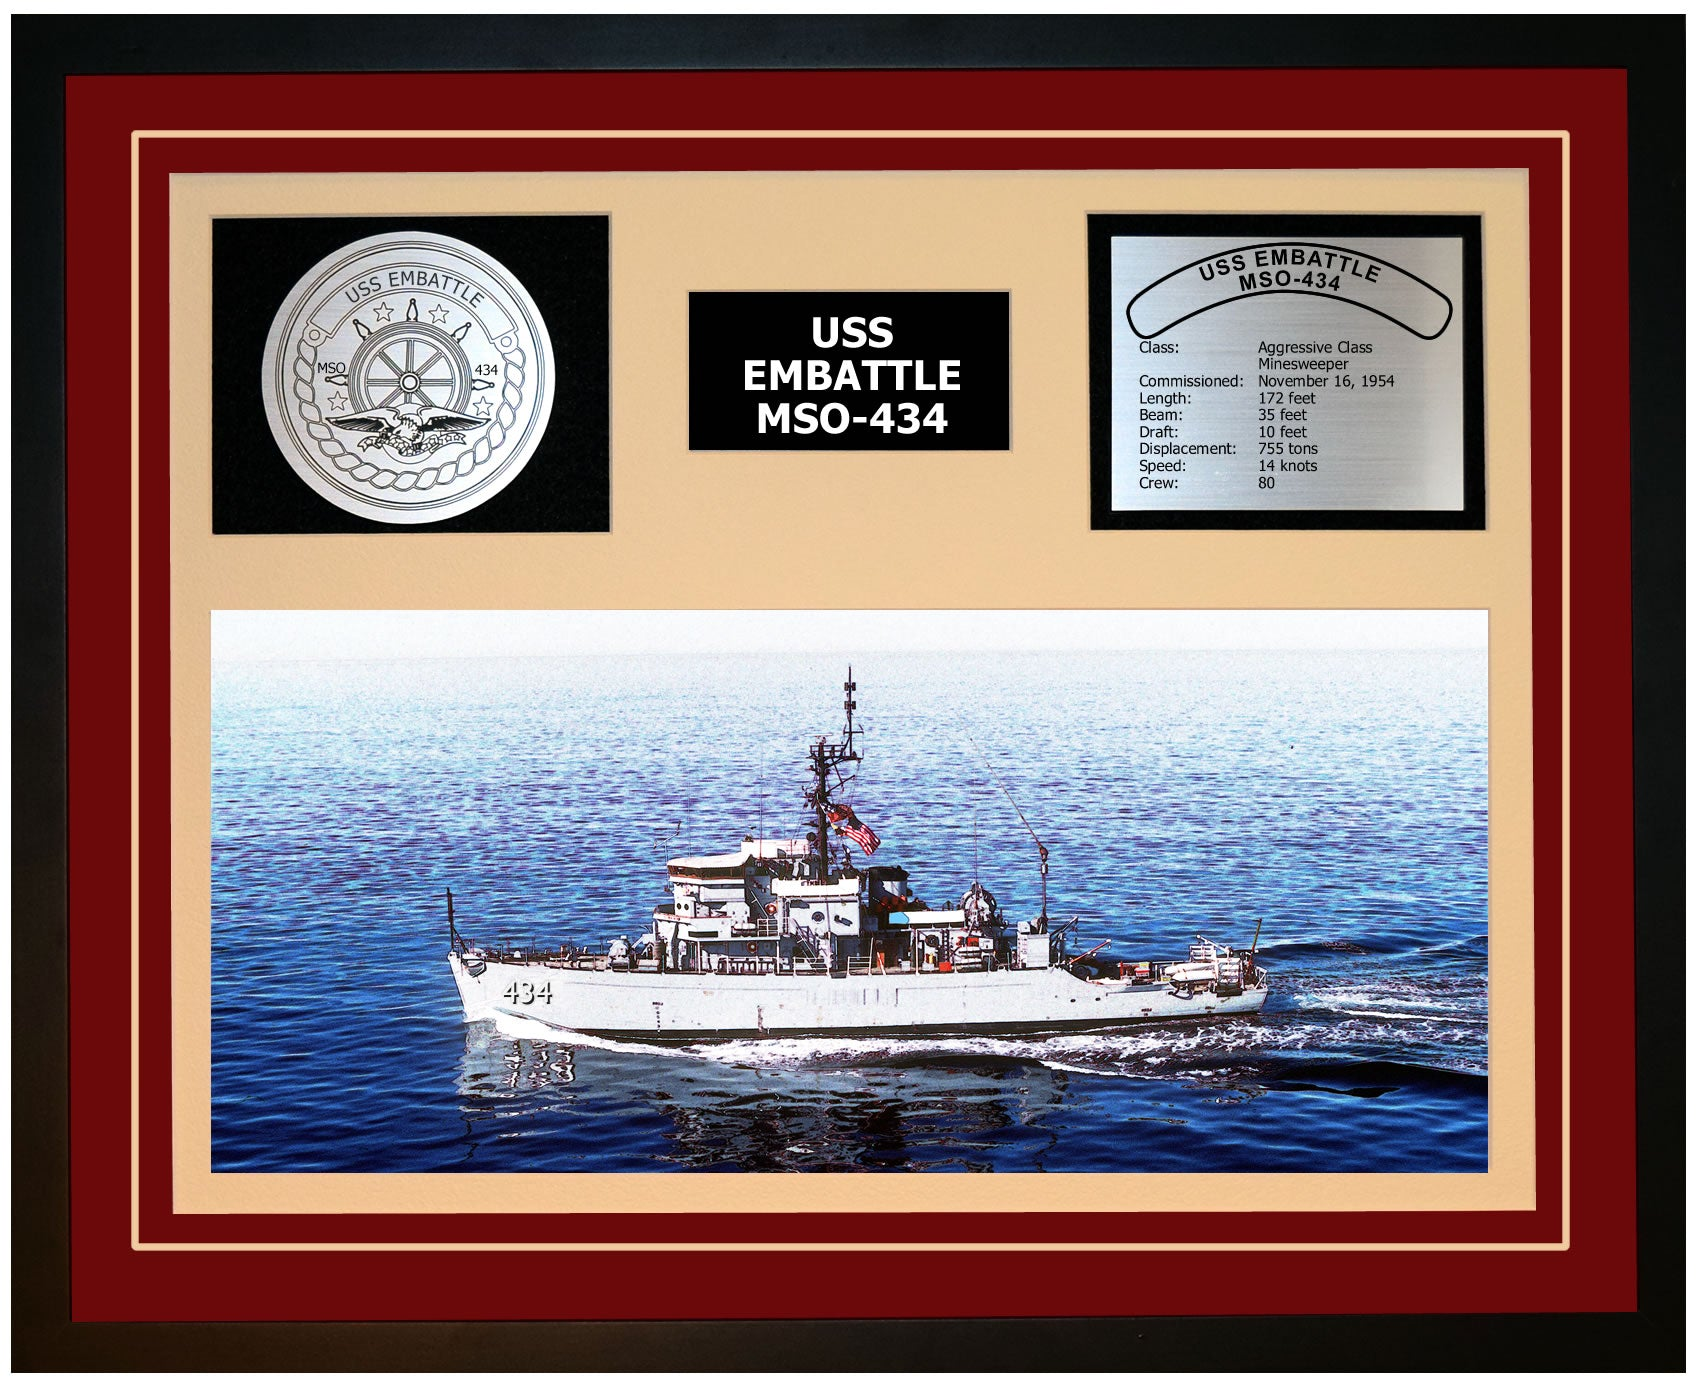 USS EMBATTLE MSO-434 Framed Navy Ship Display Burgundy